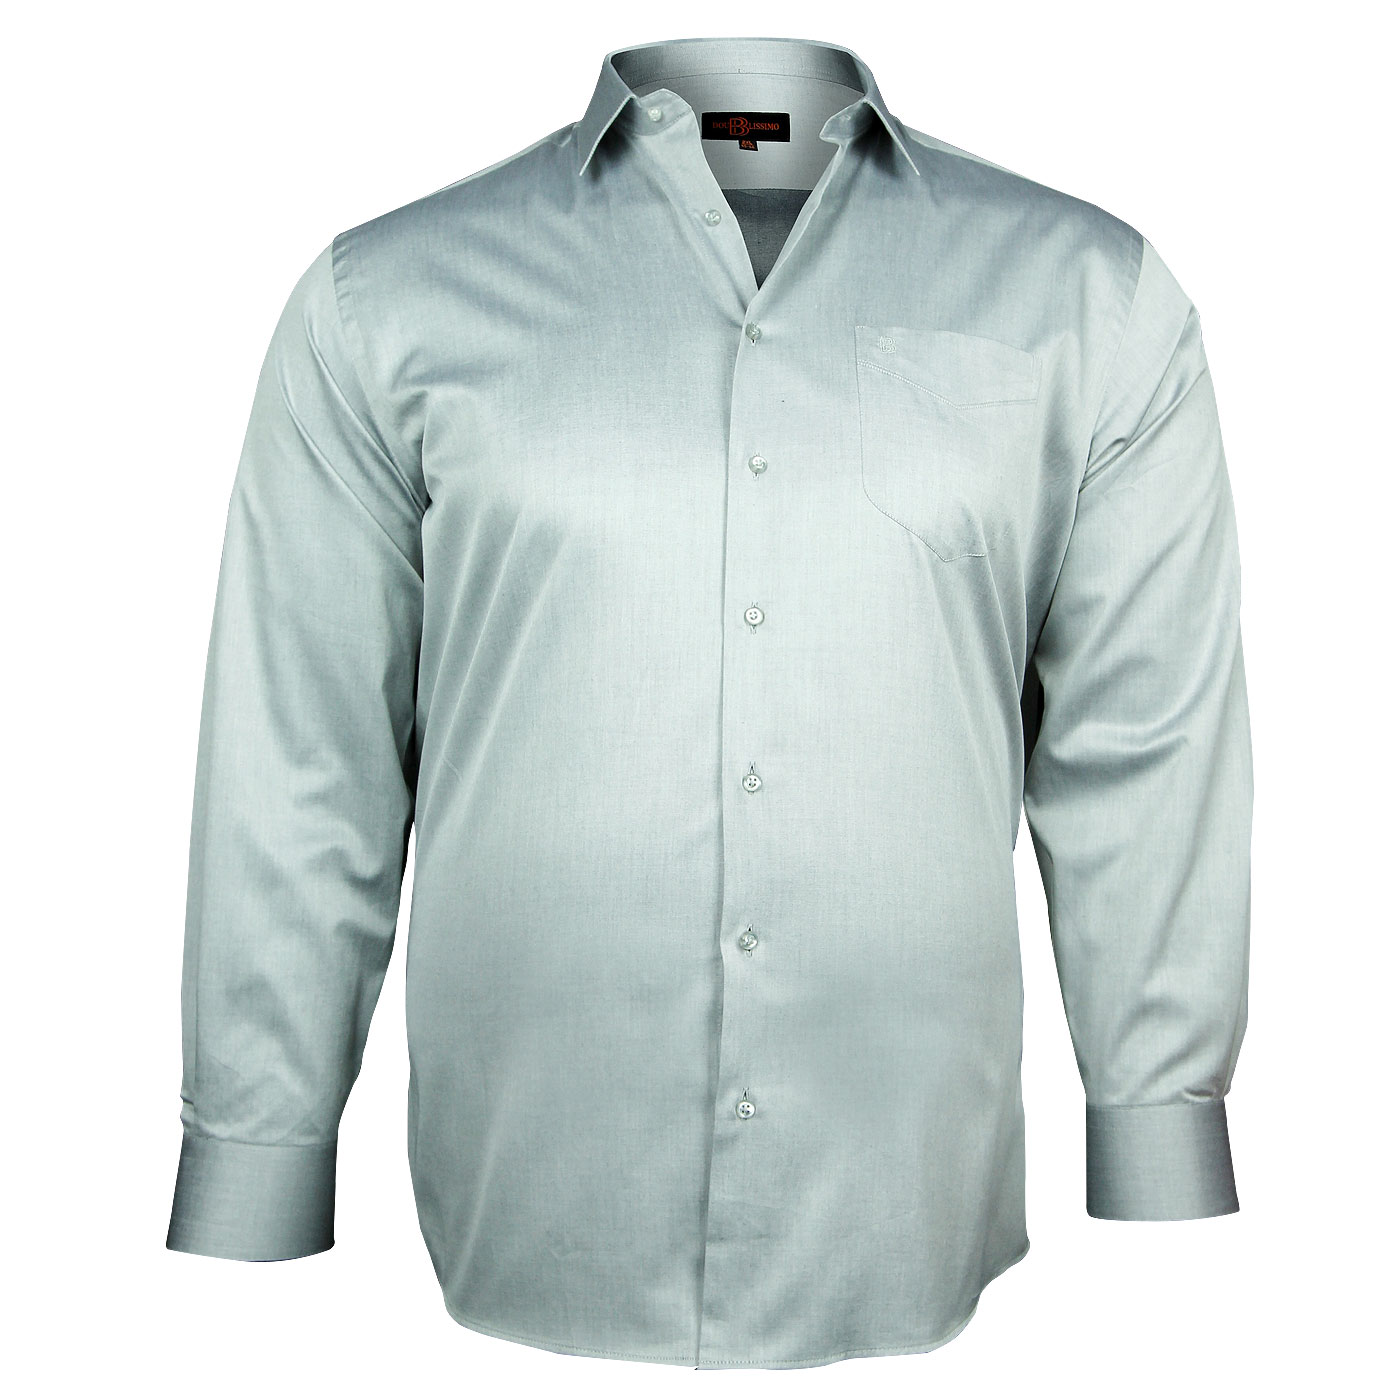 Choose Well your Shirt cut: Professional Advices